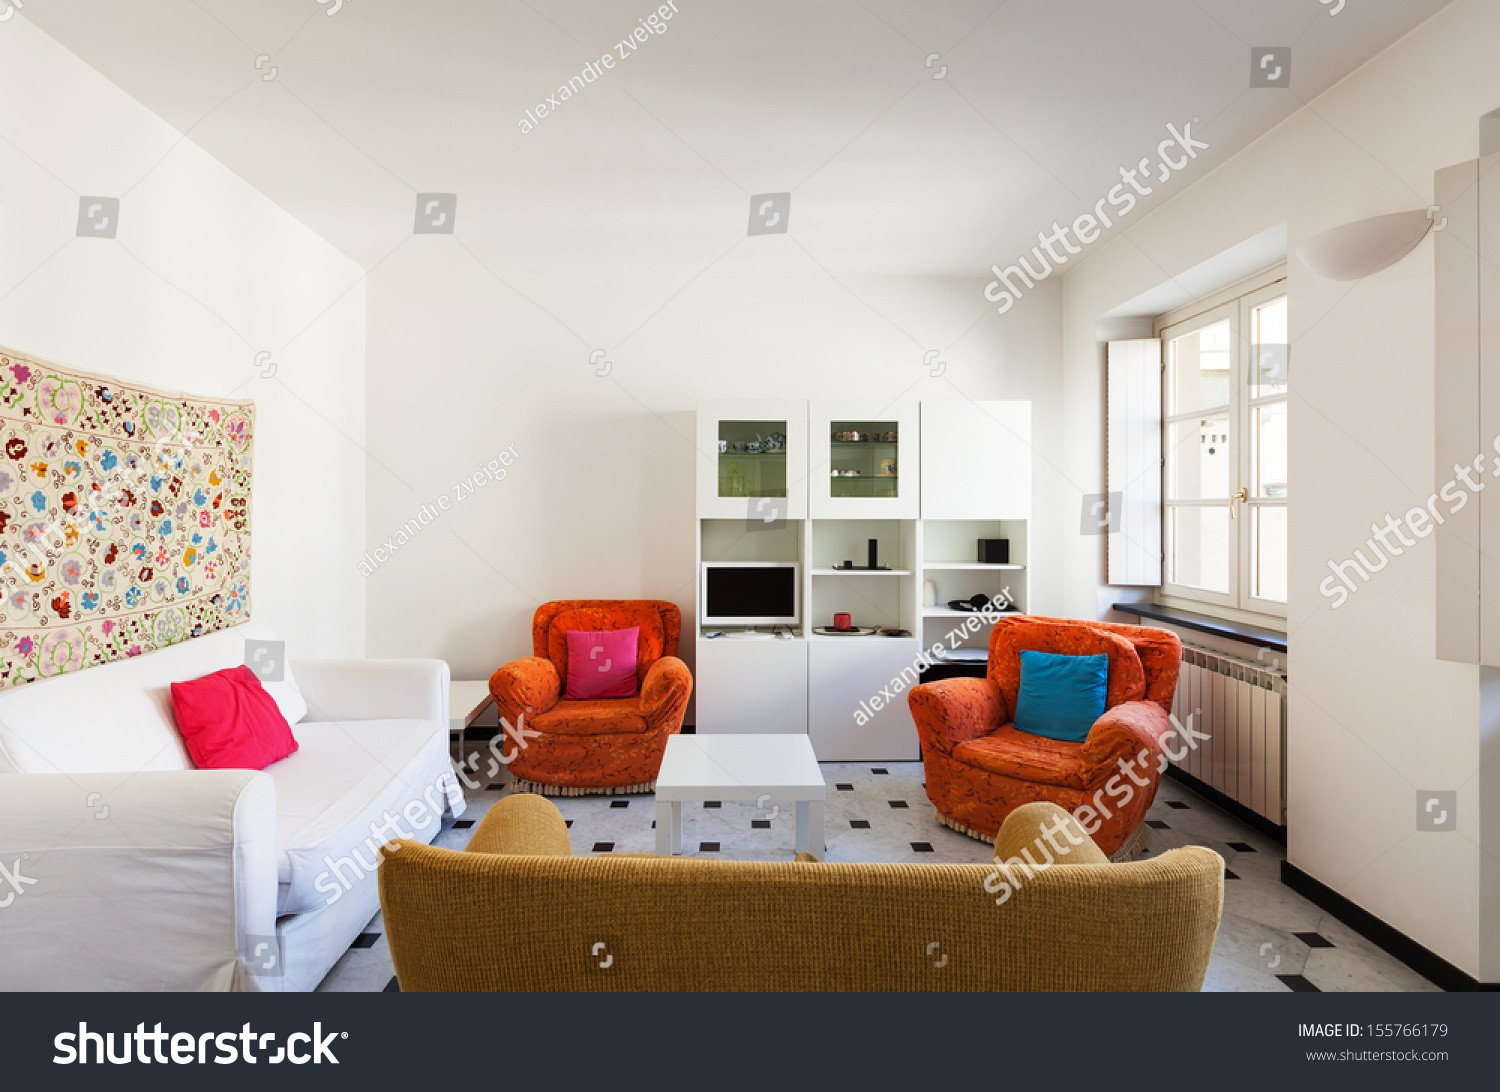 Comfortable Small Living Room Interior fortable Small Apartment Living Room Stock